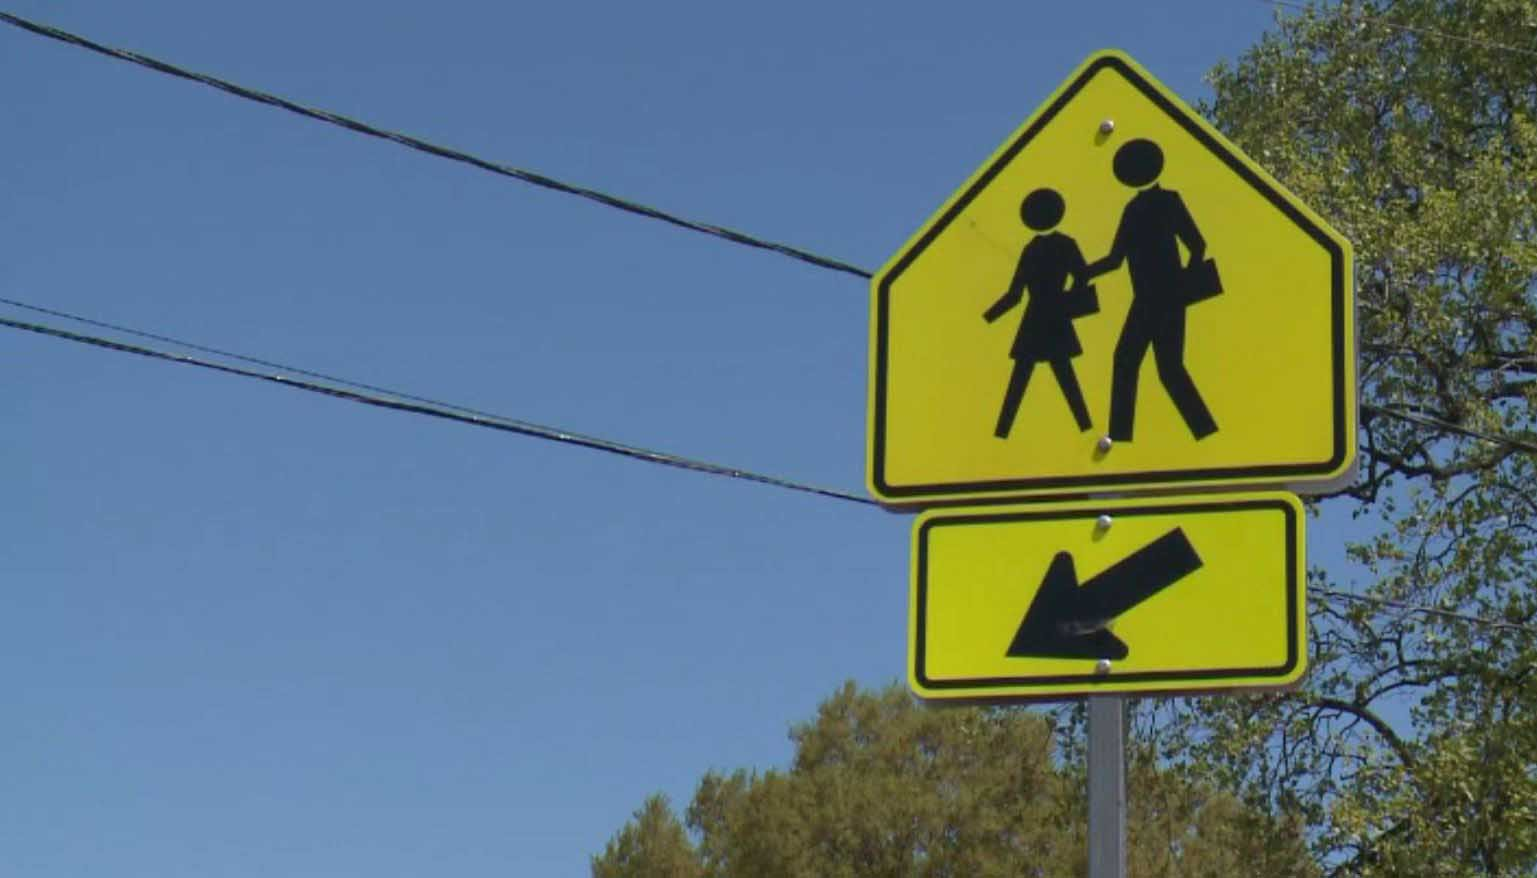 Schools in Norfolk, VA, are warning parents about a person in a van trying to lure kids. (Source: WTKR/CNN)